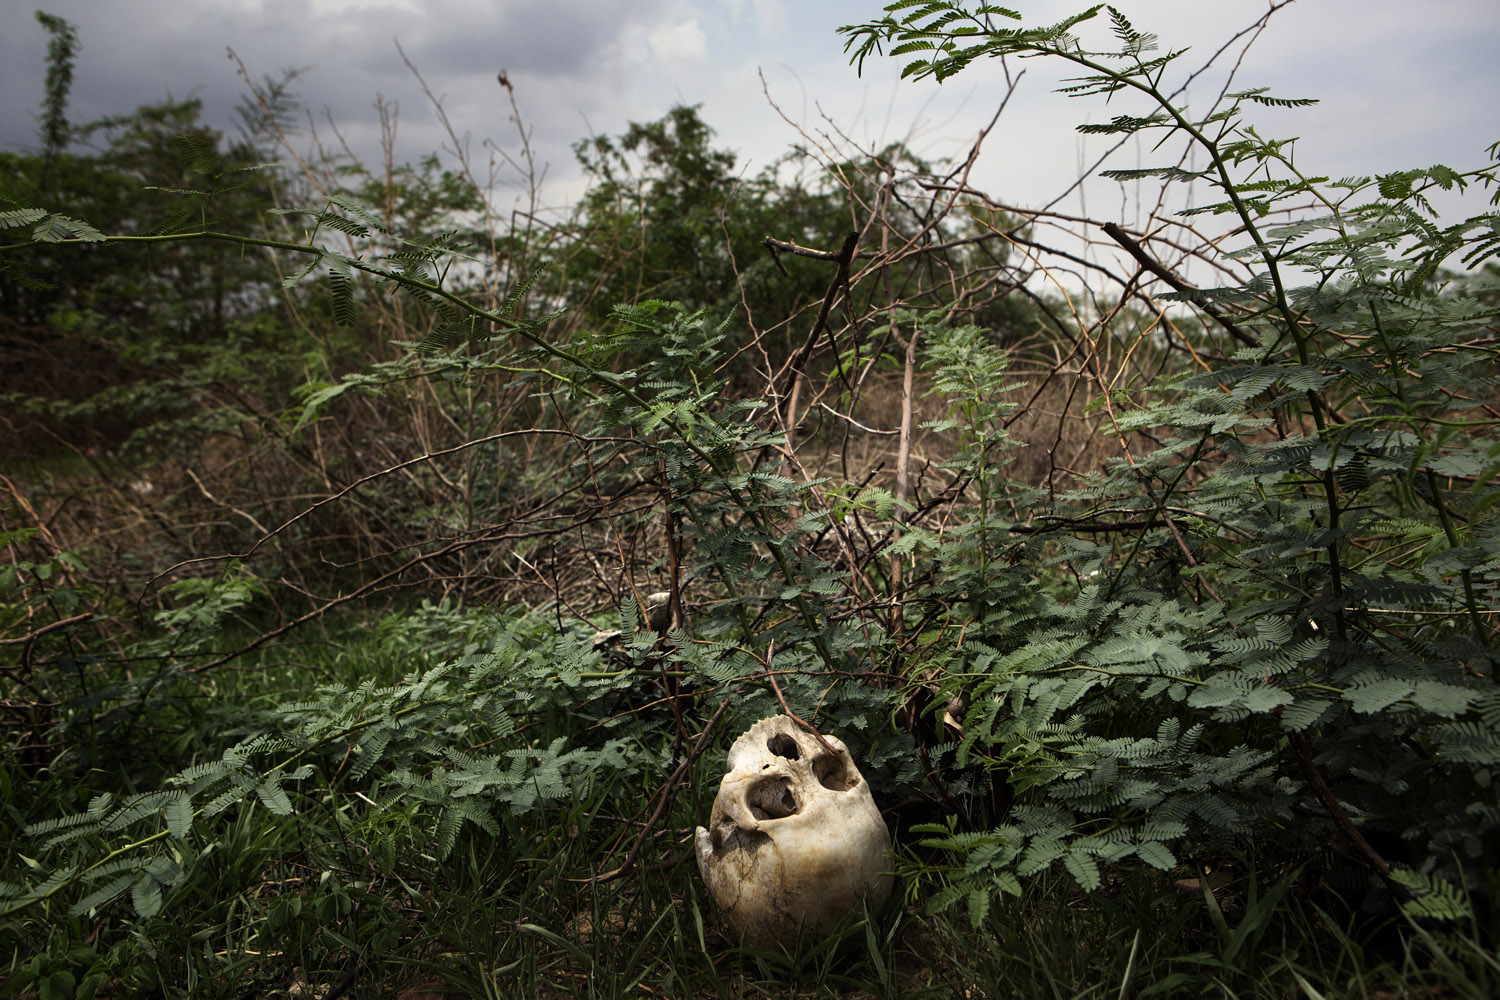 A skull on the ground near a Buddhist graveyard, which appears to have been recently desecrated in Meikhtila, Burma.